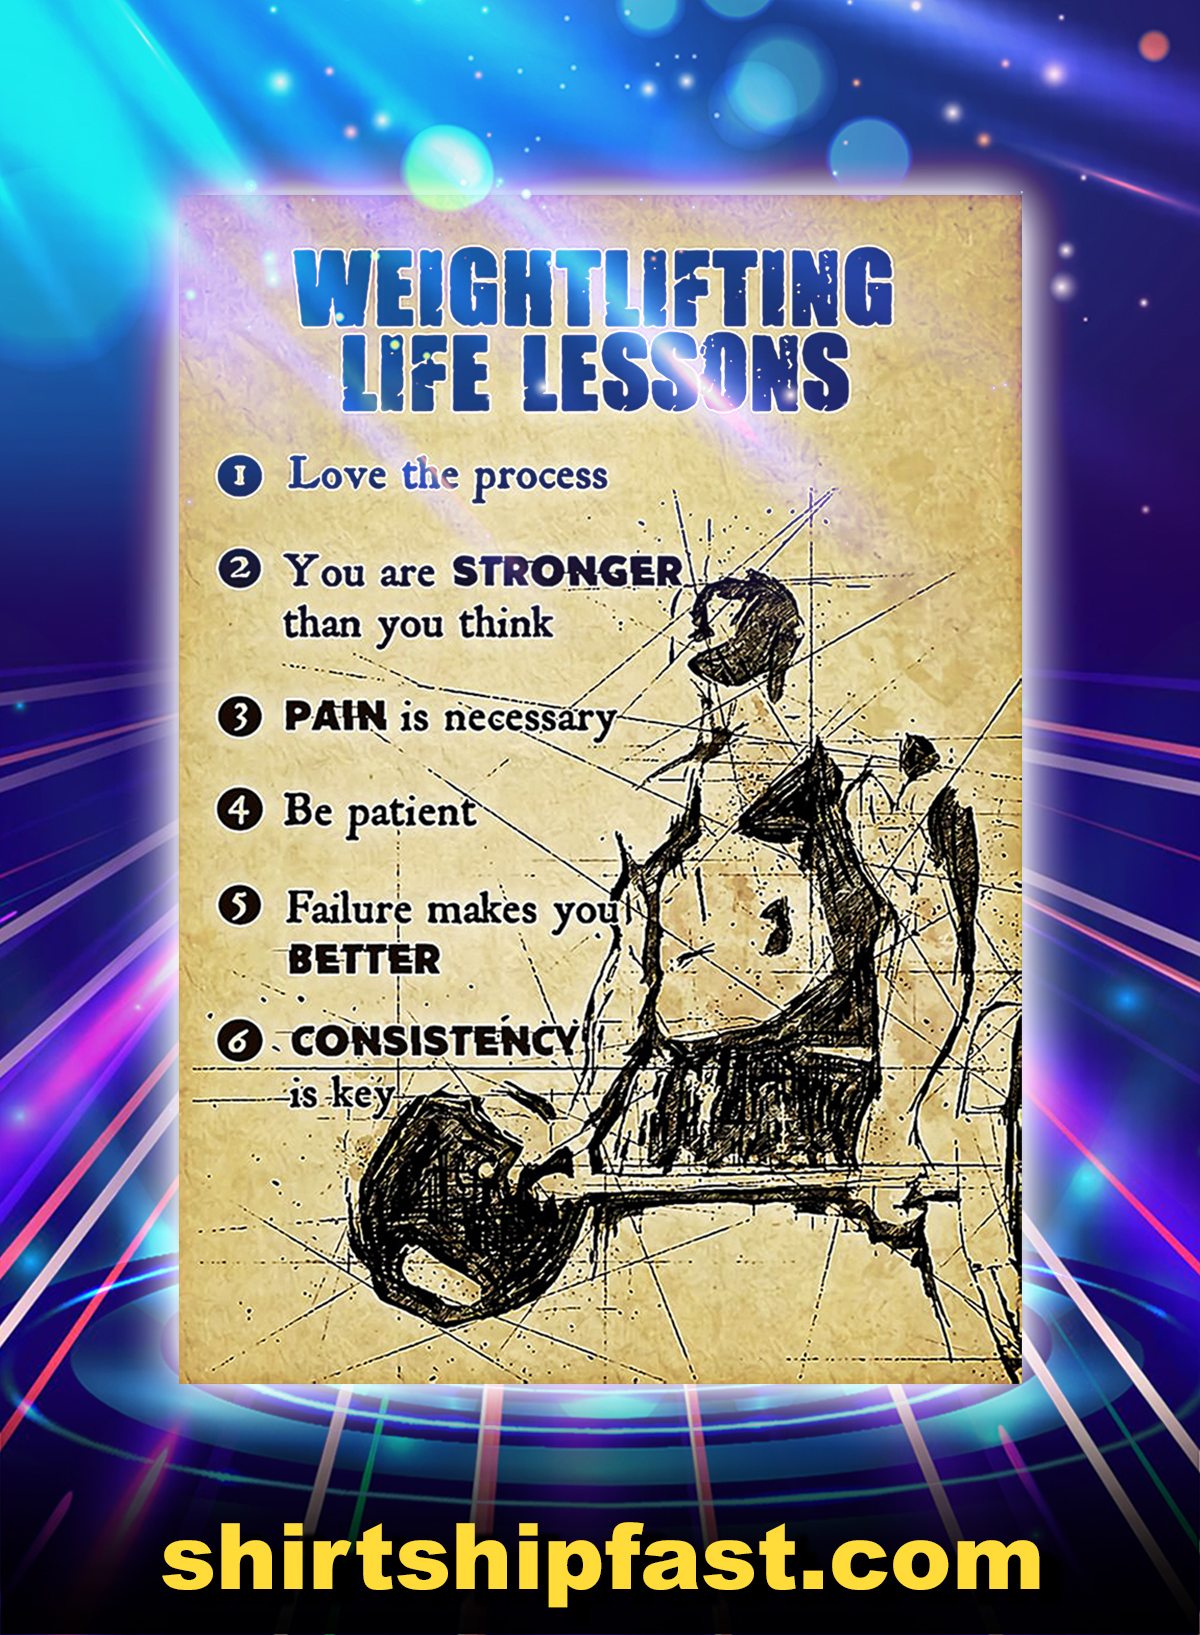 Fitness weightlifting life lessons poster - A1